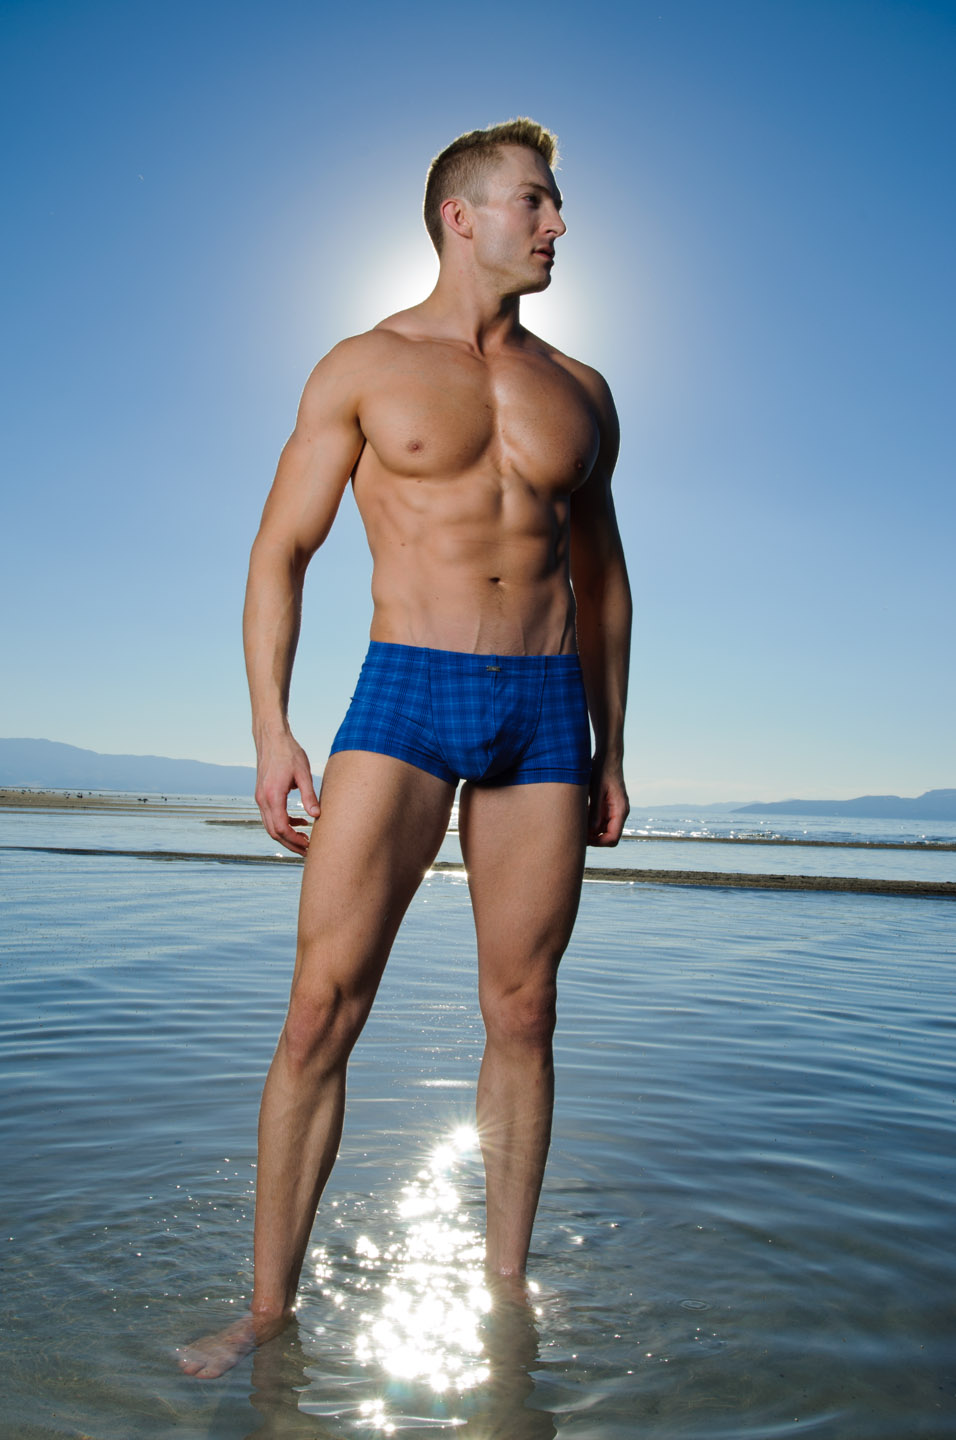 Blue swim trunks and male model in the great salt lake